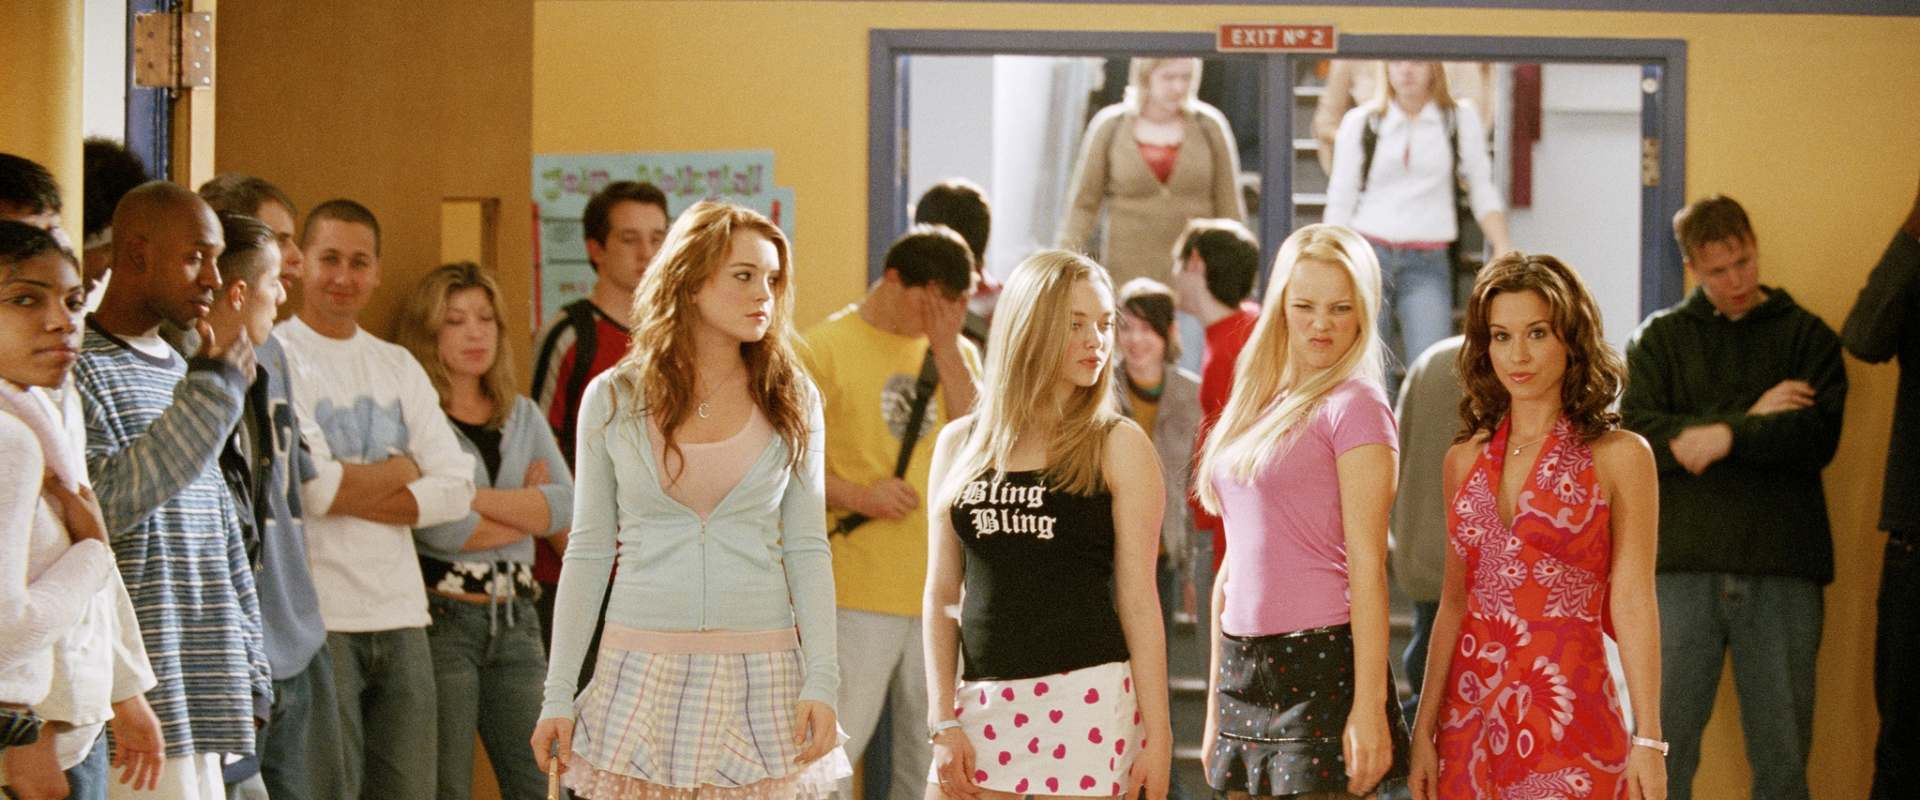 Mean Girls background 1